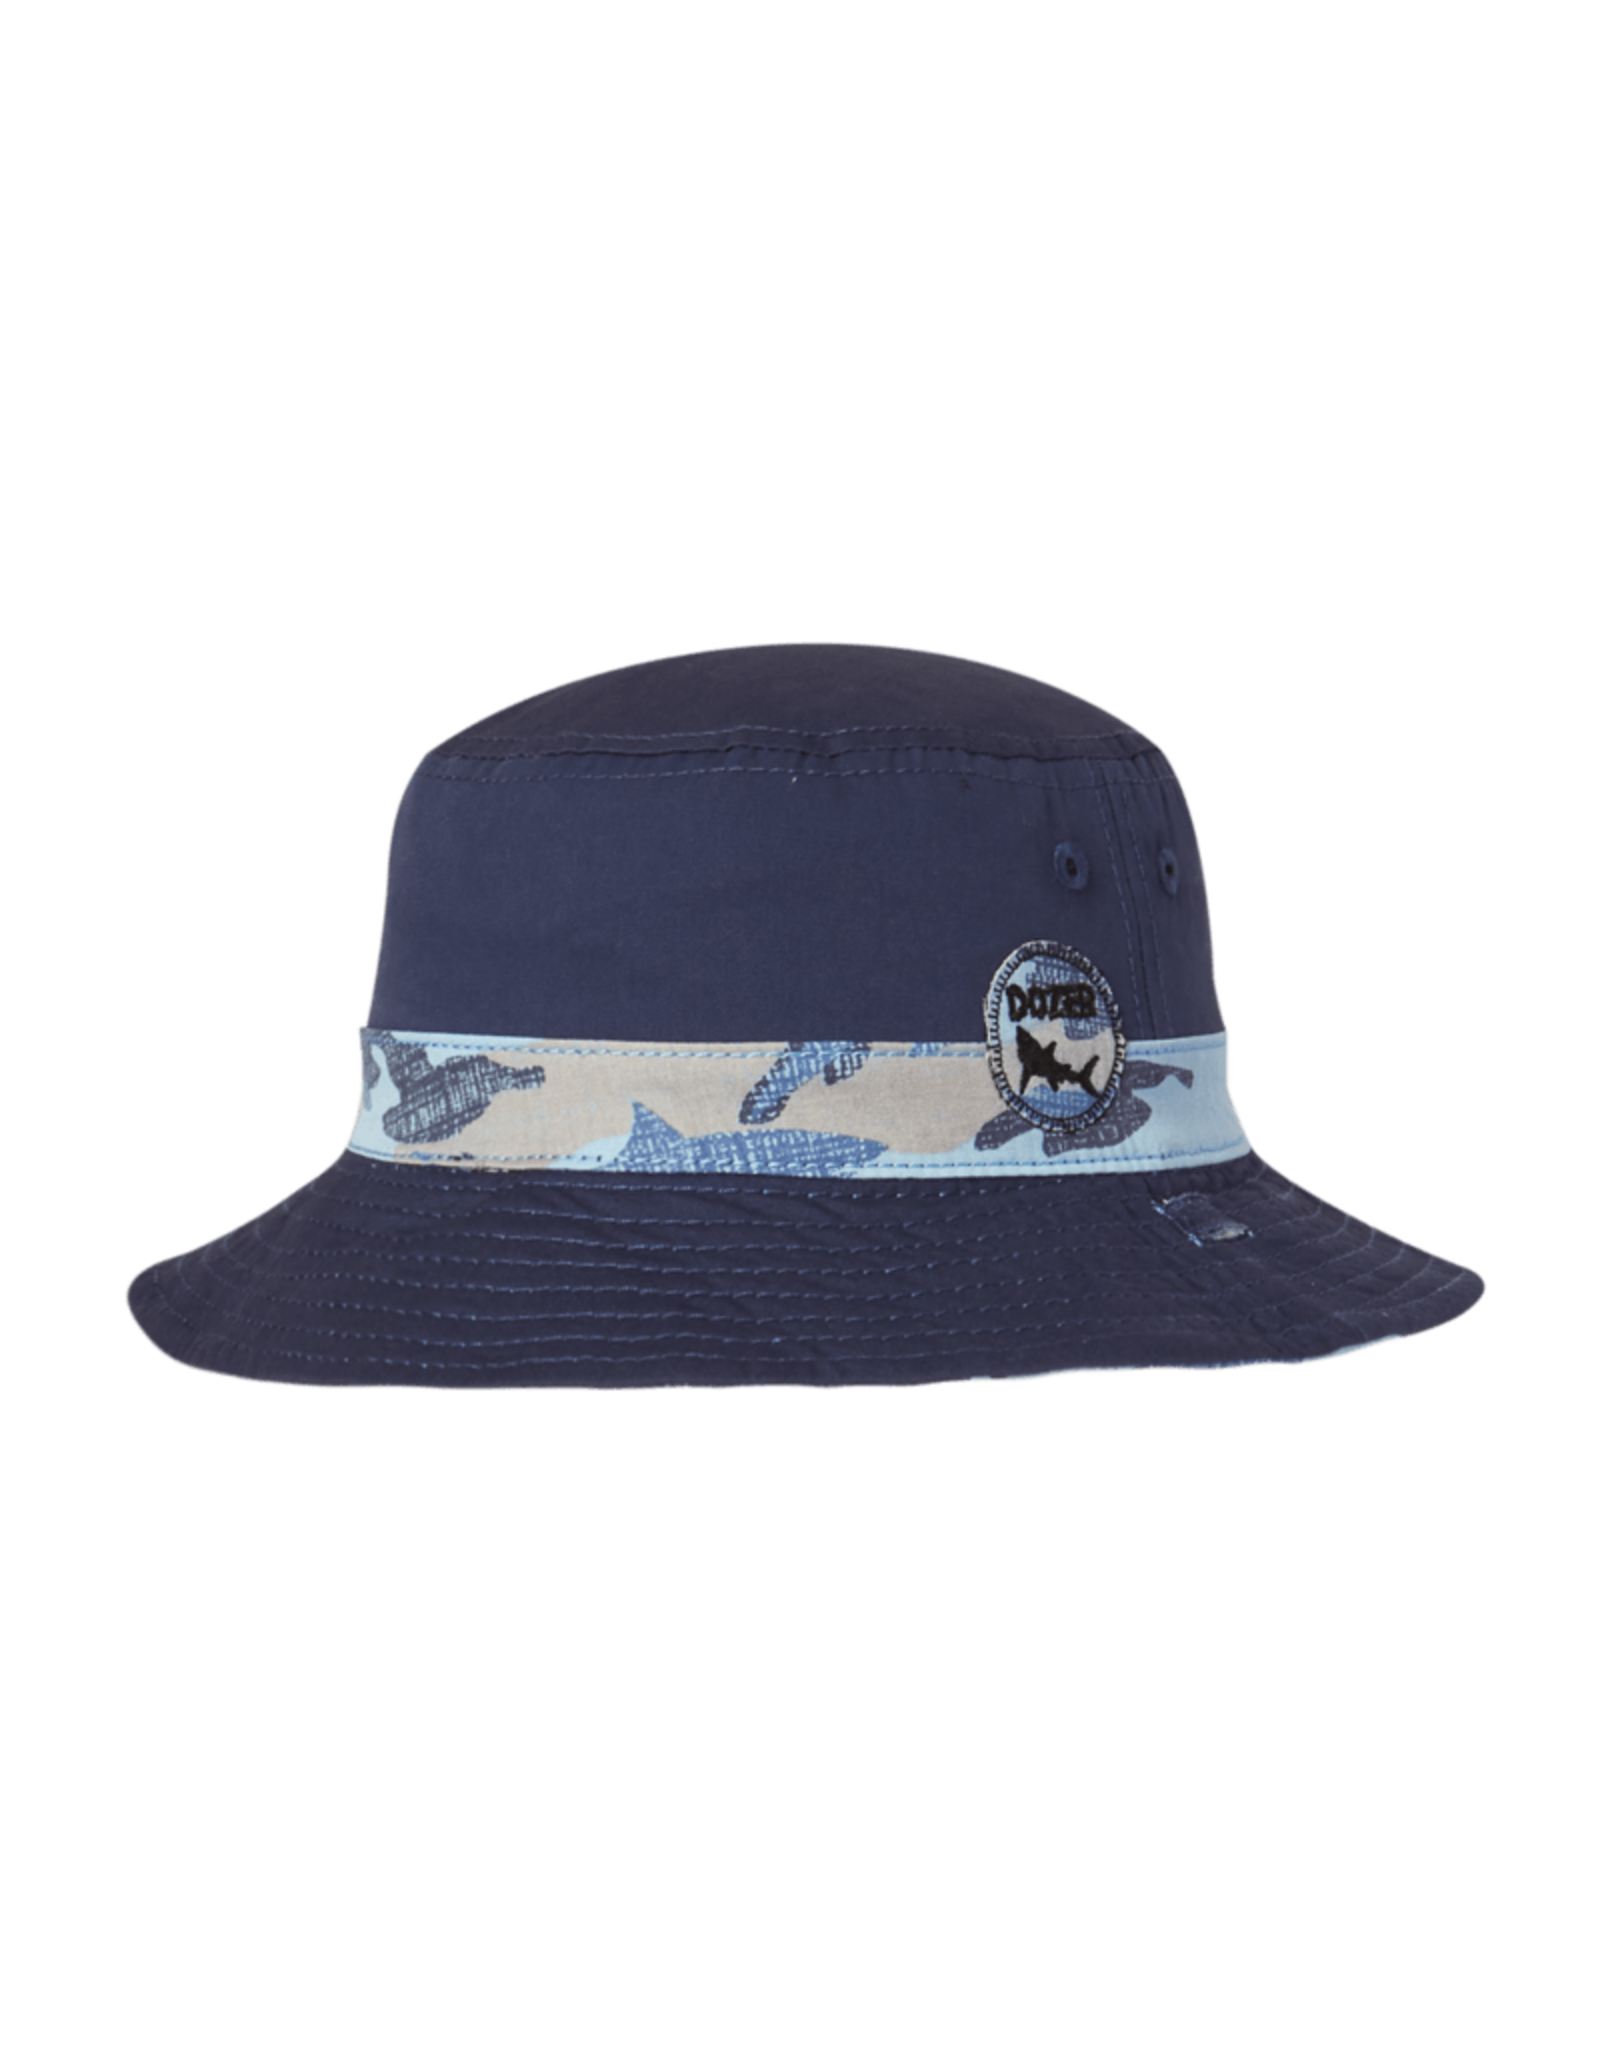 EARTH NYMPH EARTH NYMPH REEF BUCKET HAT